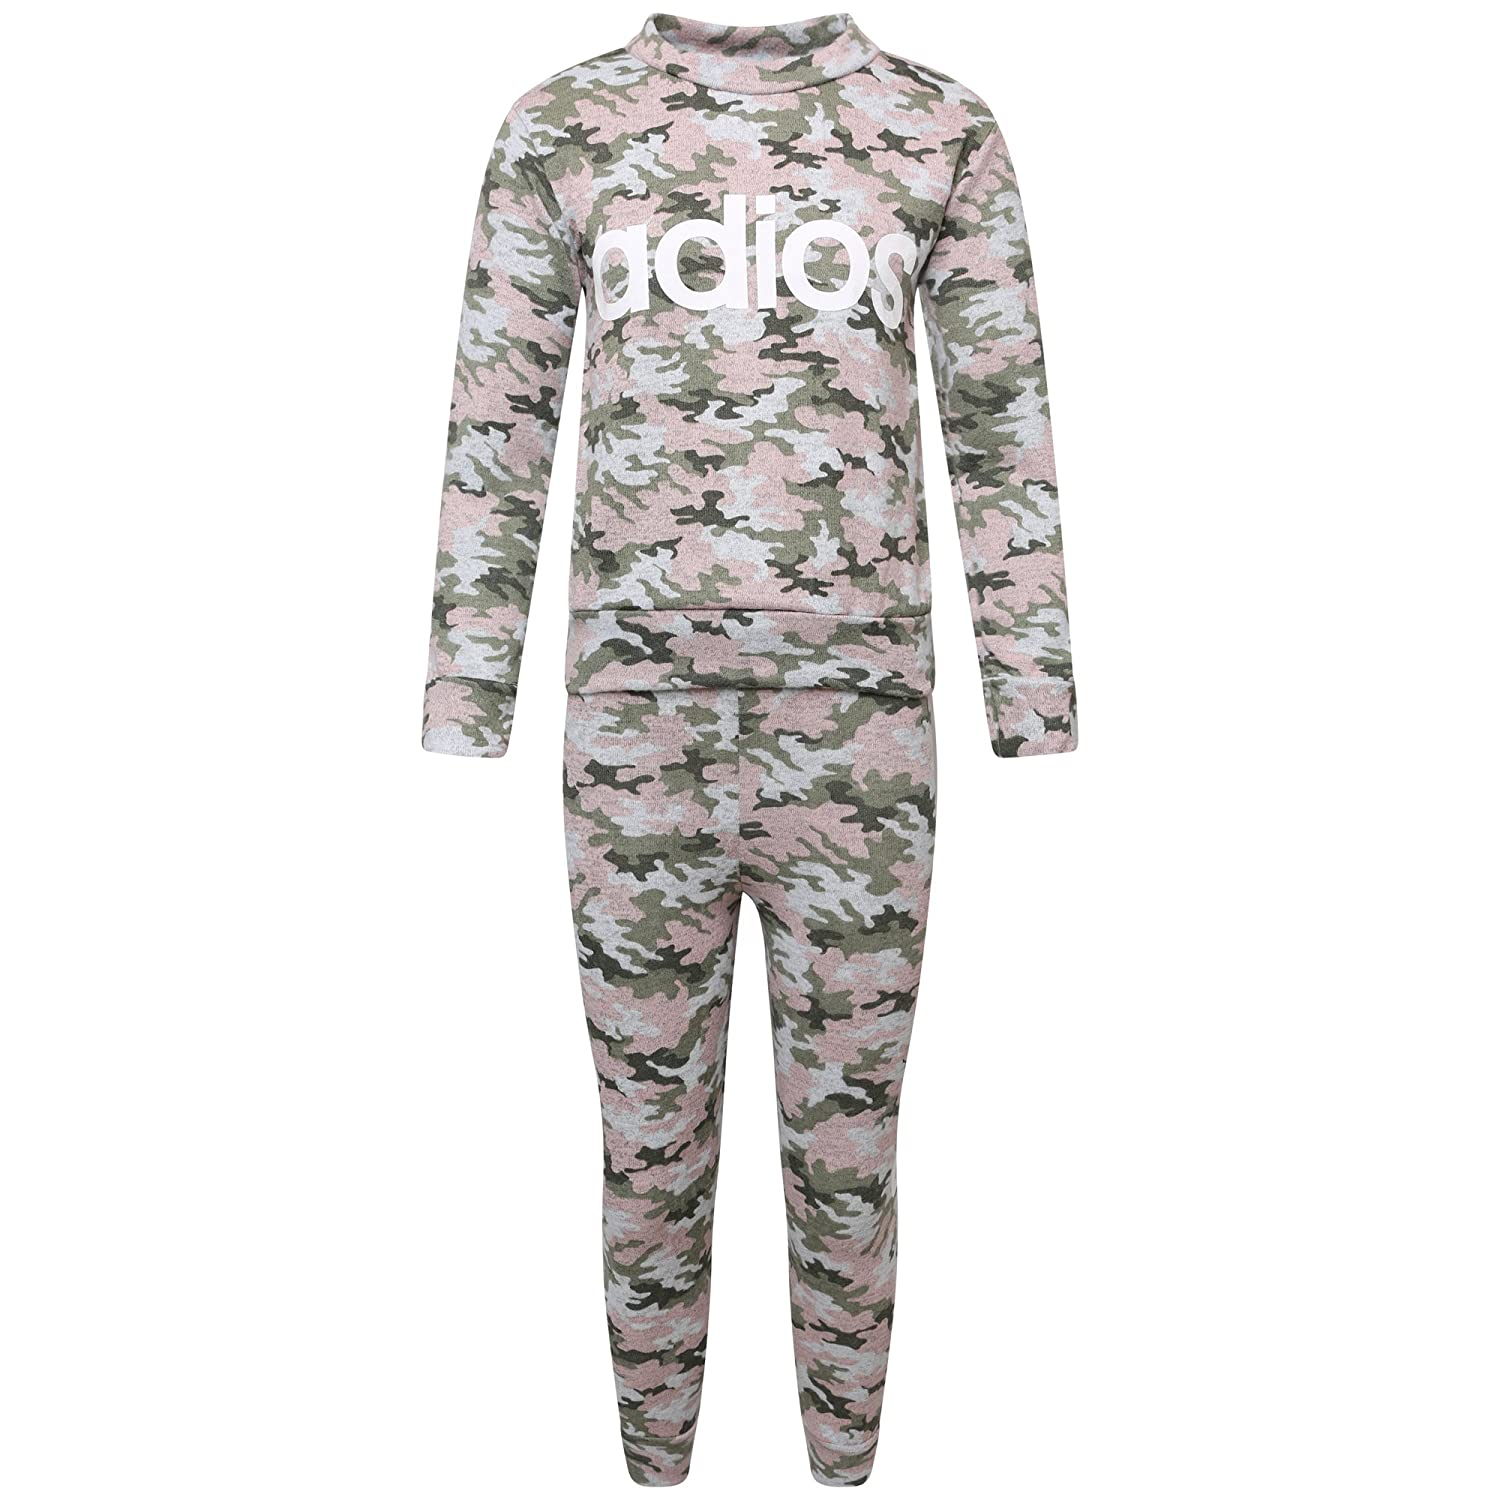 Girls Kids Adios Camouflage Print Army Crop Top & Bottoms New York 98 Leggings Tracksuit Suit Age 2-13 Years